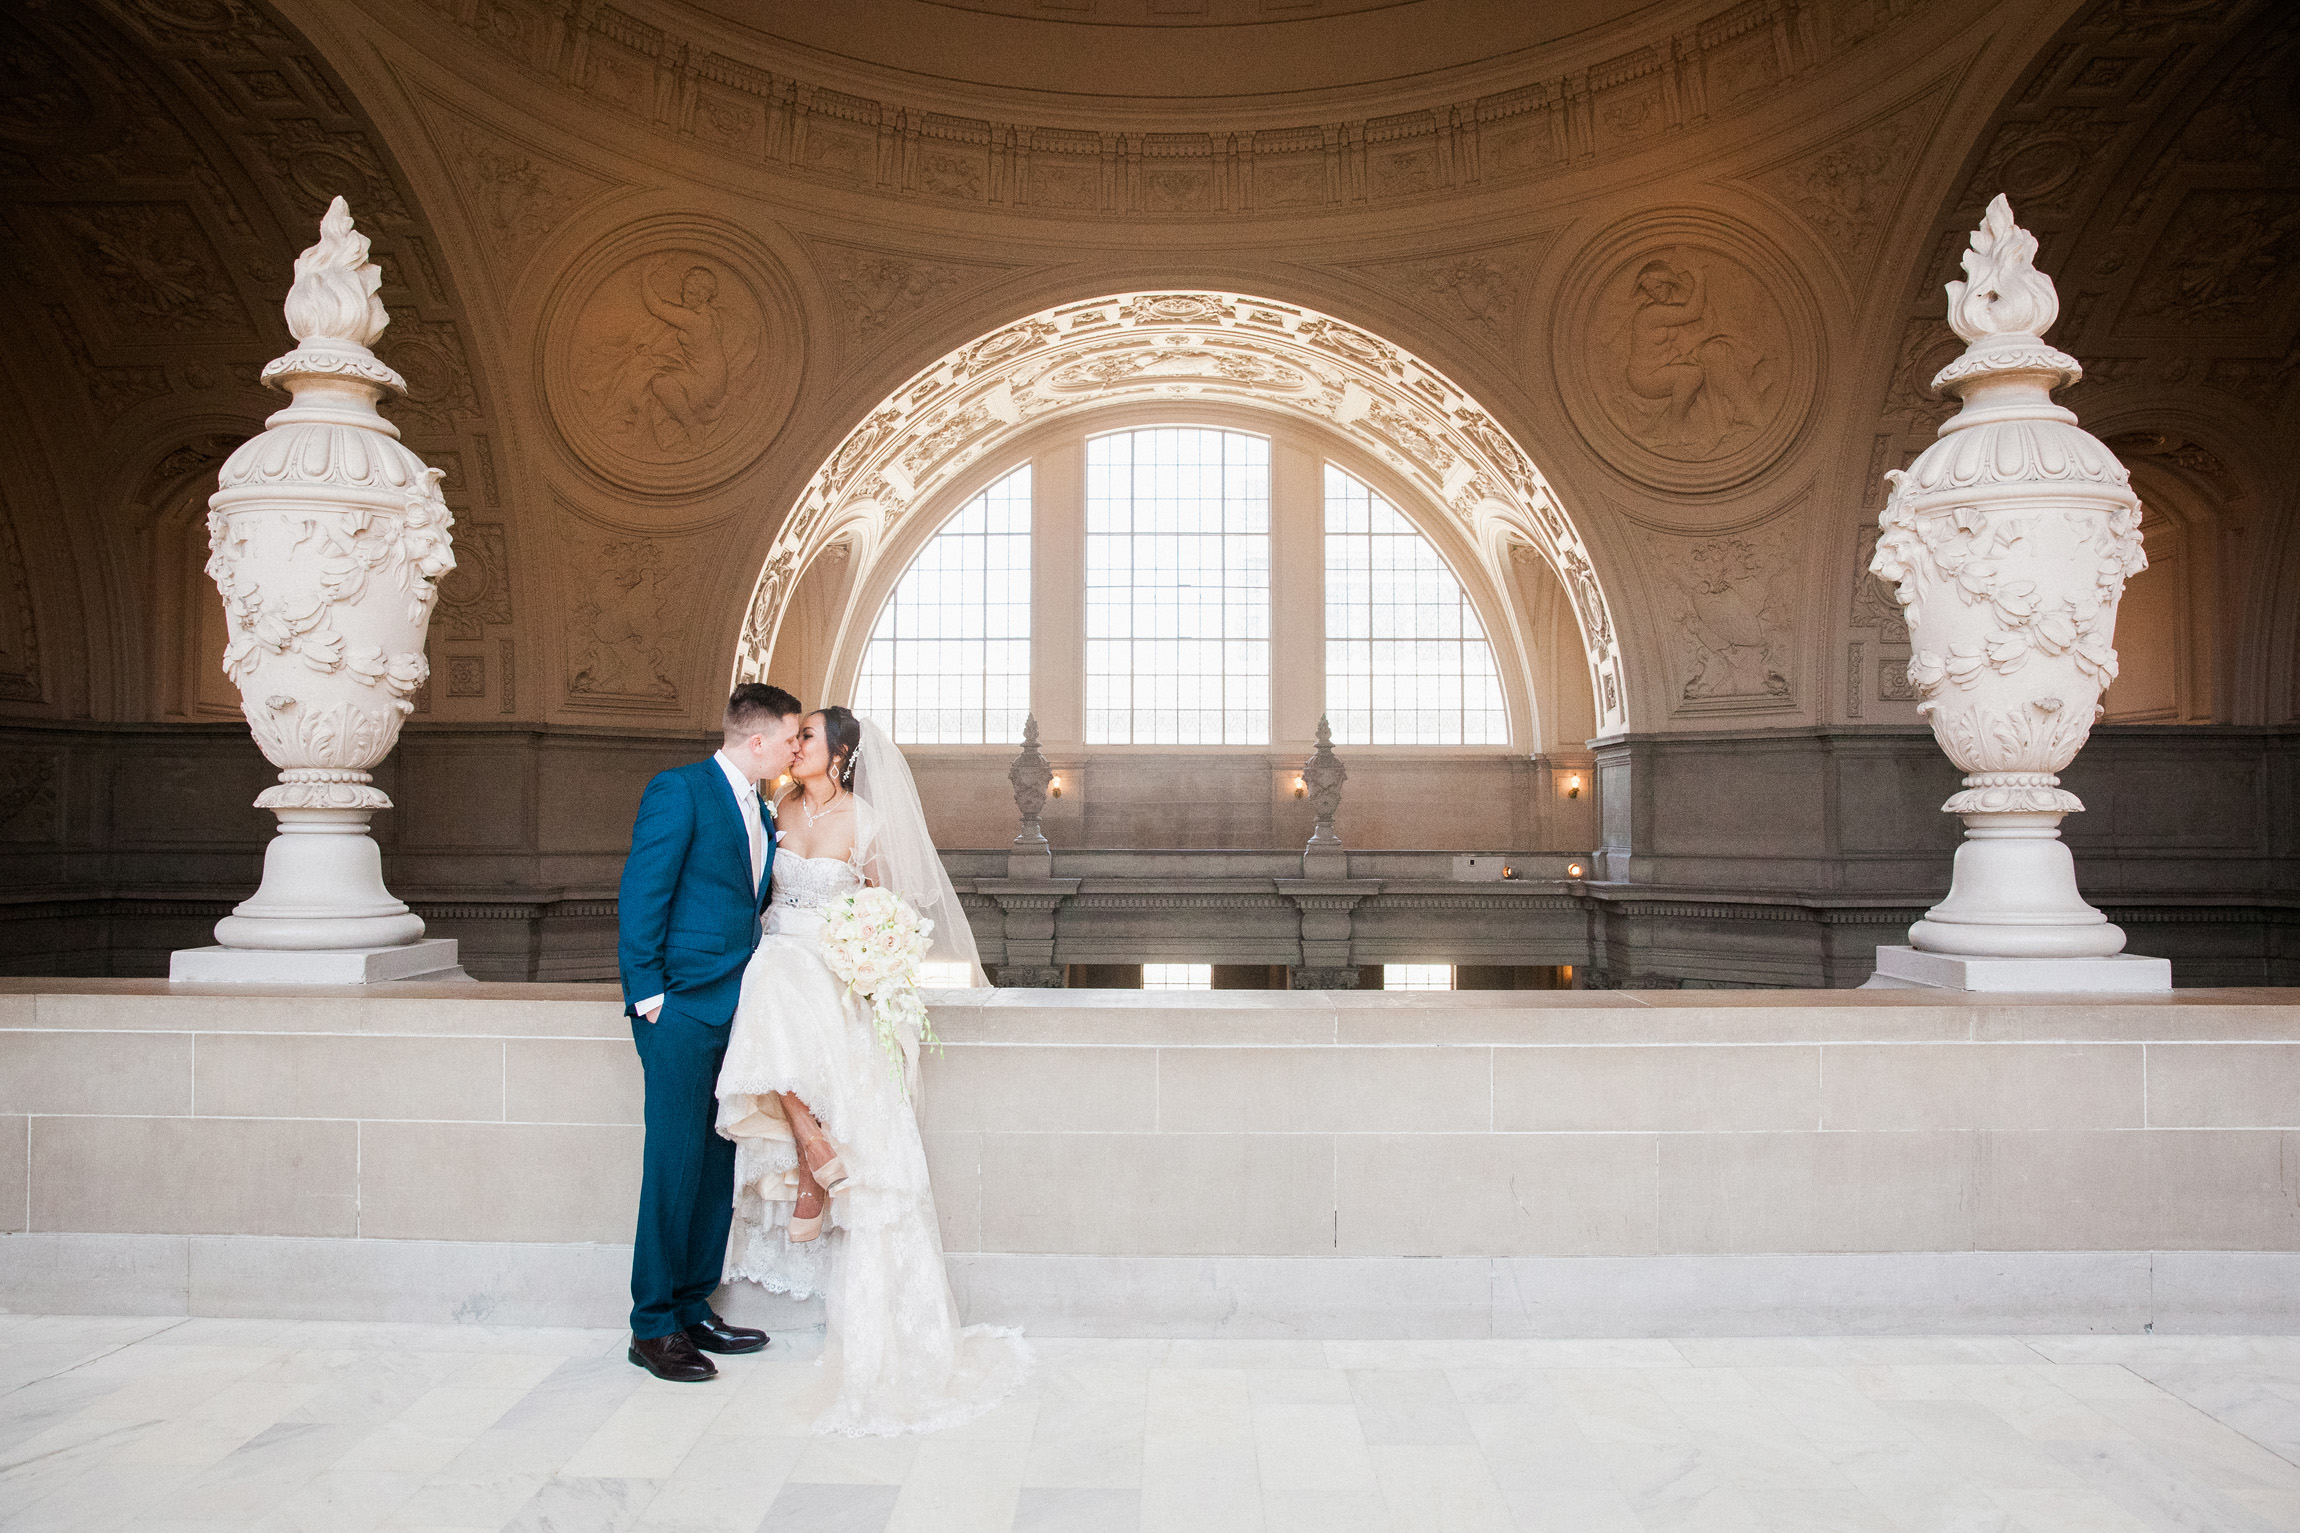 016_janaeshieldsphotography_sanfrancisco_cityhall_weddings.jpg